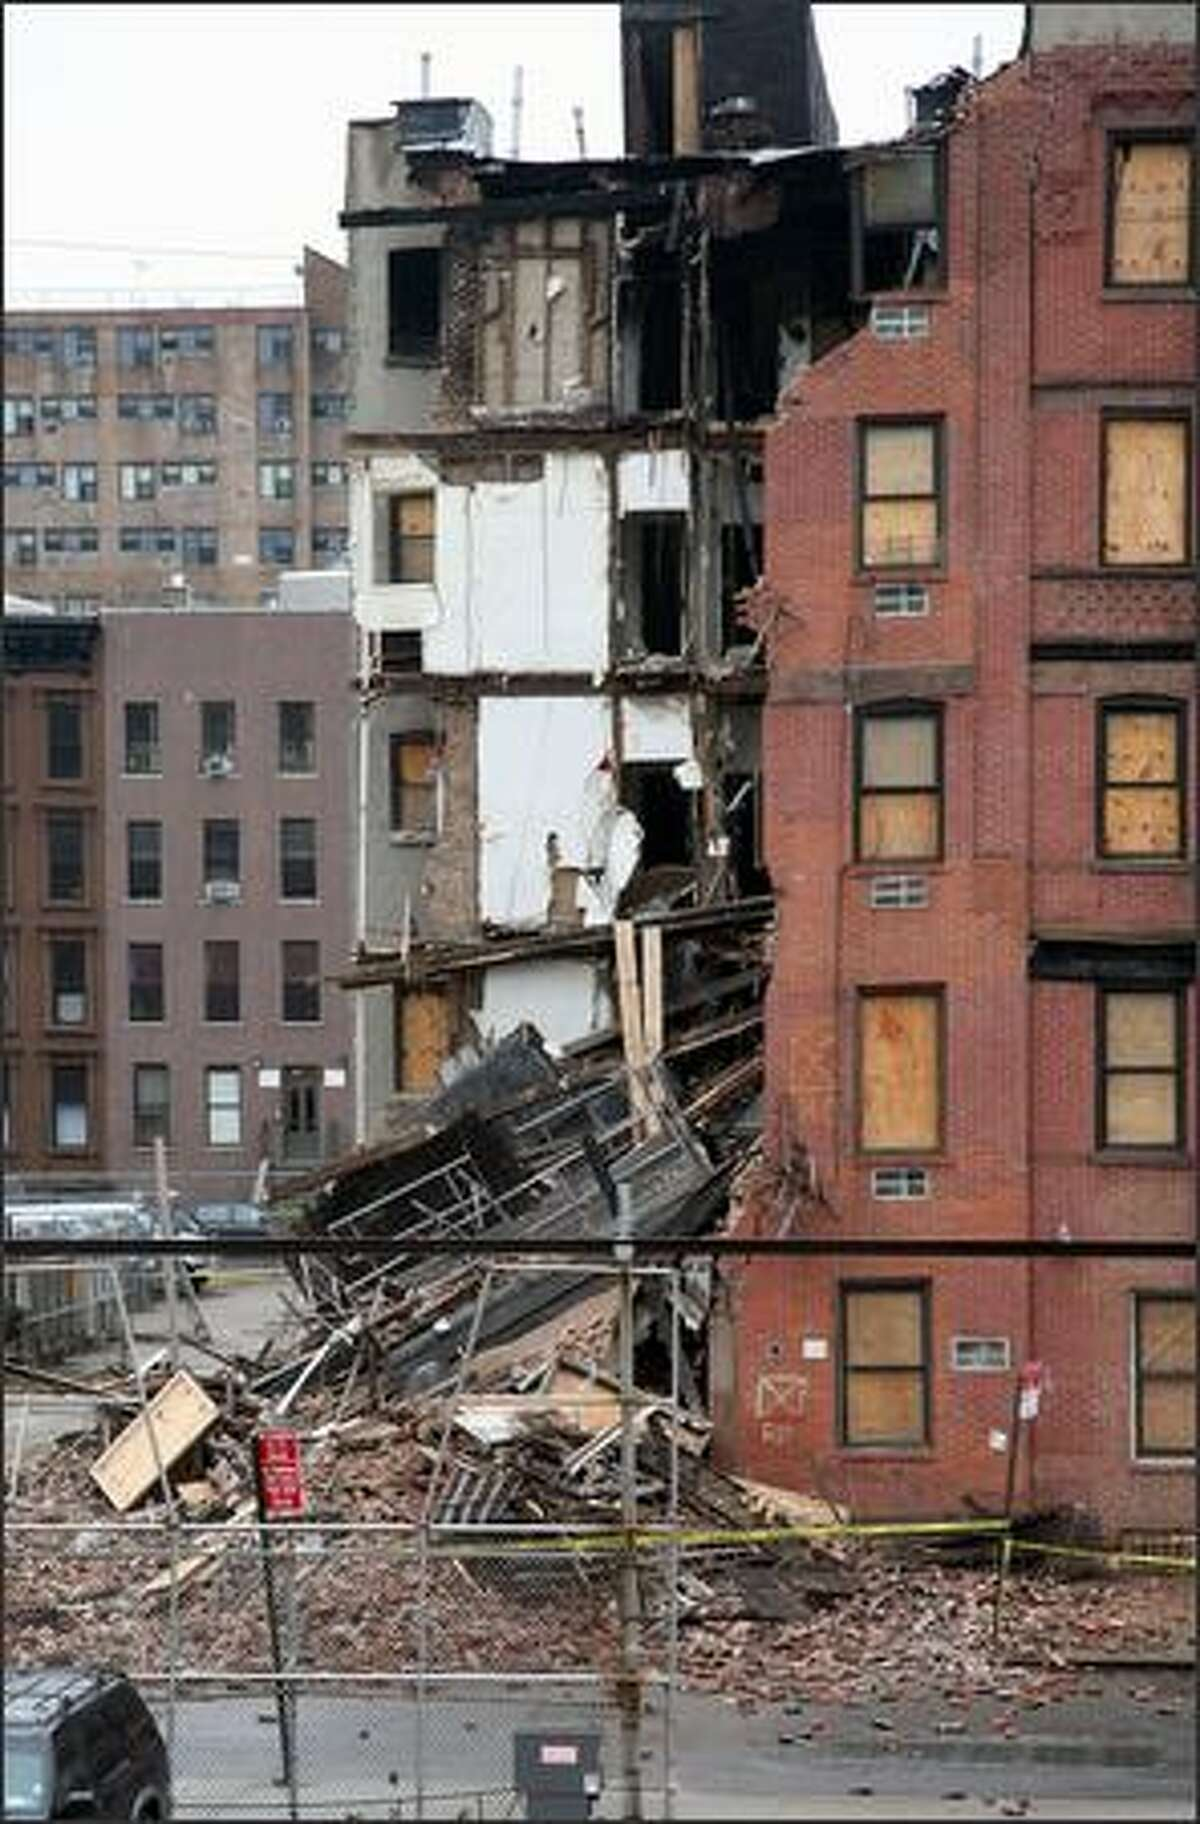 A vacant building on 124 St. and Park Ave. is seen after collapsing in Harlem, New York, Tuesday. The five-story vacant apartment building partially collapsed, leading to the suspension of dozens of rush-hour suburban trains. There were no immediate reports of injuries.